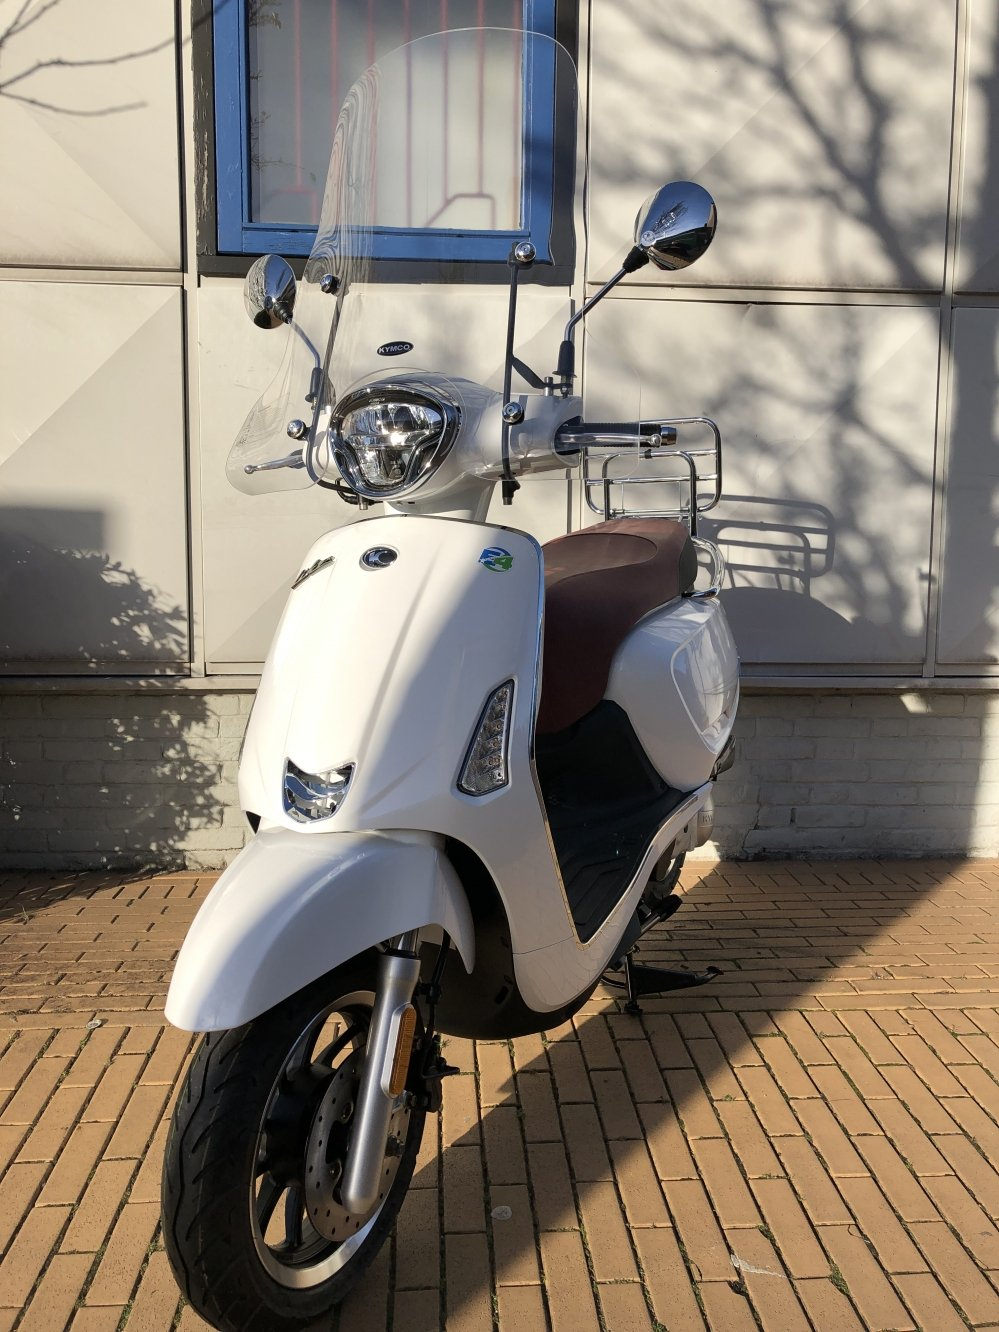 kymco-scooter-like-new-agility-super-people-motor-ak550-tensen